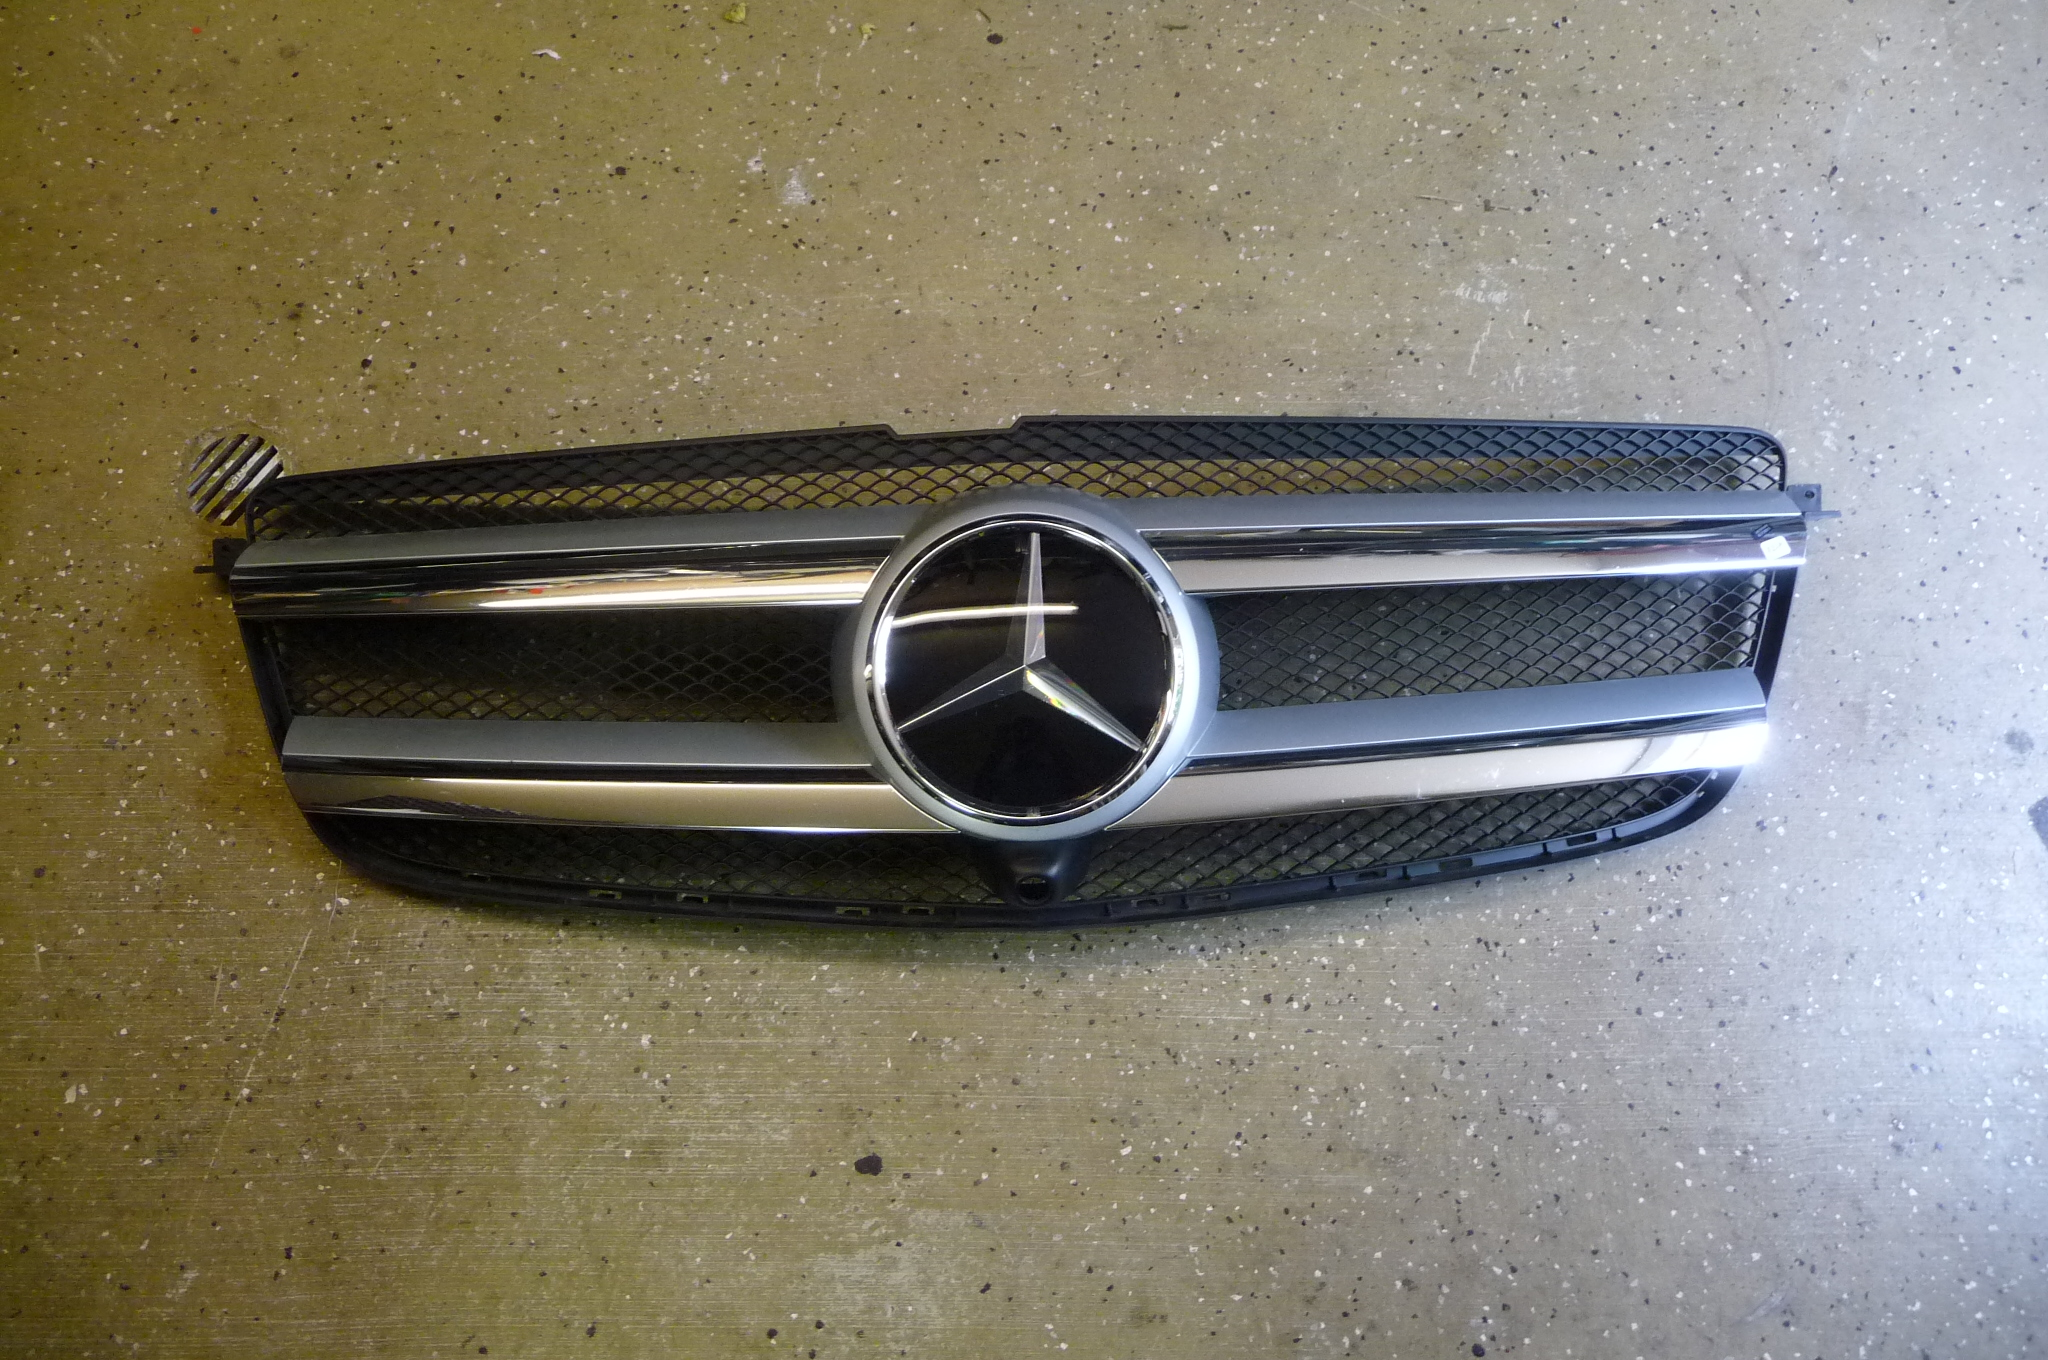 Mercedes Benz X166 GL Class Front Radiator Grille Assembly 1668800385 OEM OE